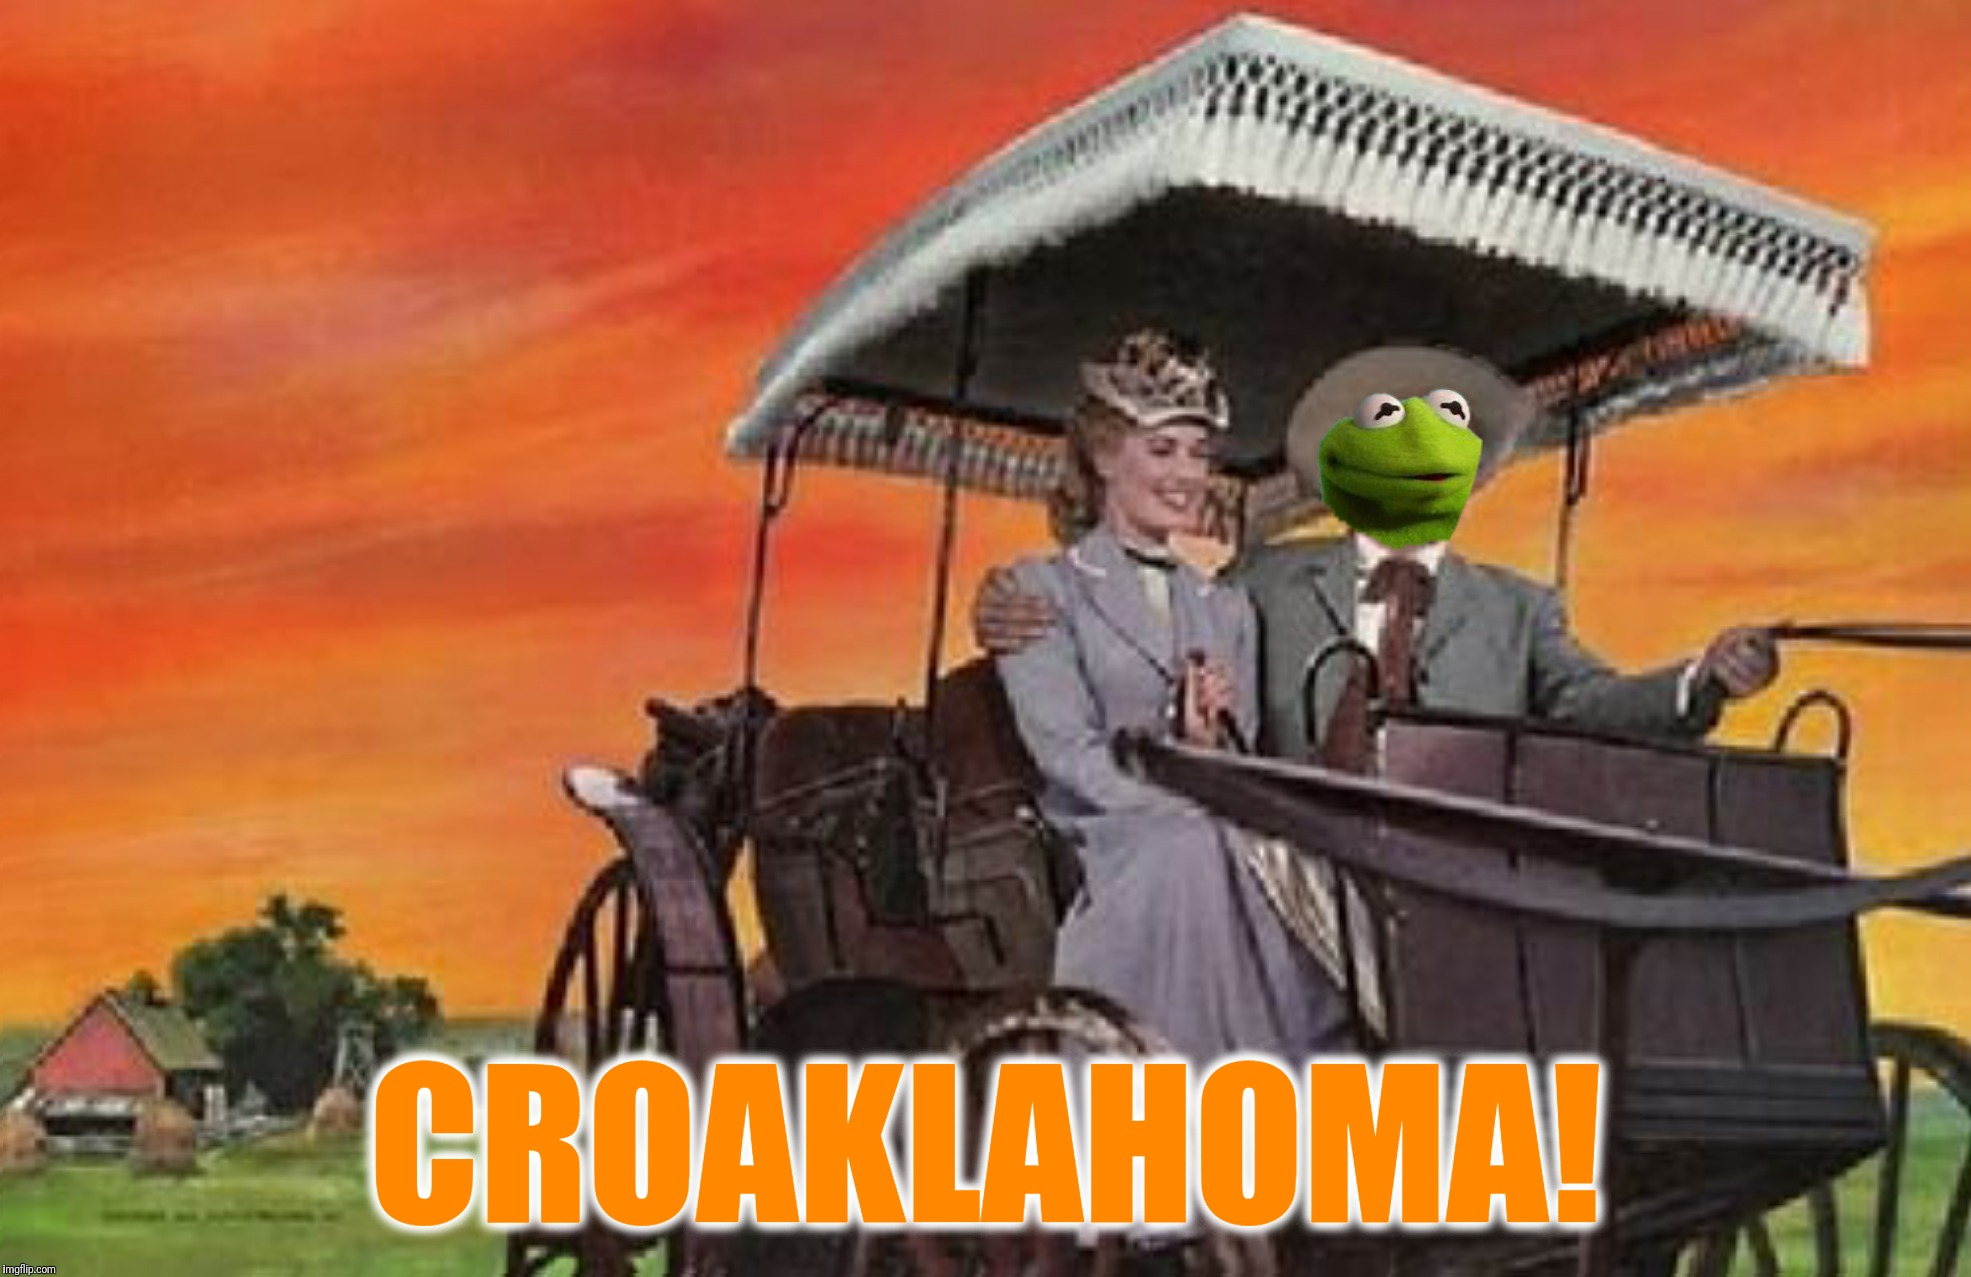 Bad Photoshop Sunday presents:  A frog, a woman and a surrey with the fringe on top (Thanks to Phantasmemegoric for the idea) | CROAKLAHOMA! | image tagged in bad photoshop sunday,oklahoma,kermit the frog,surrey with the fringe on top | made w/ Imgflip meme maker